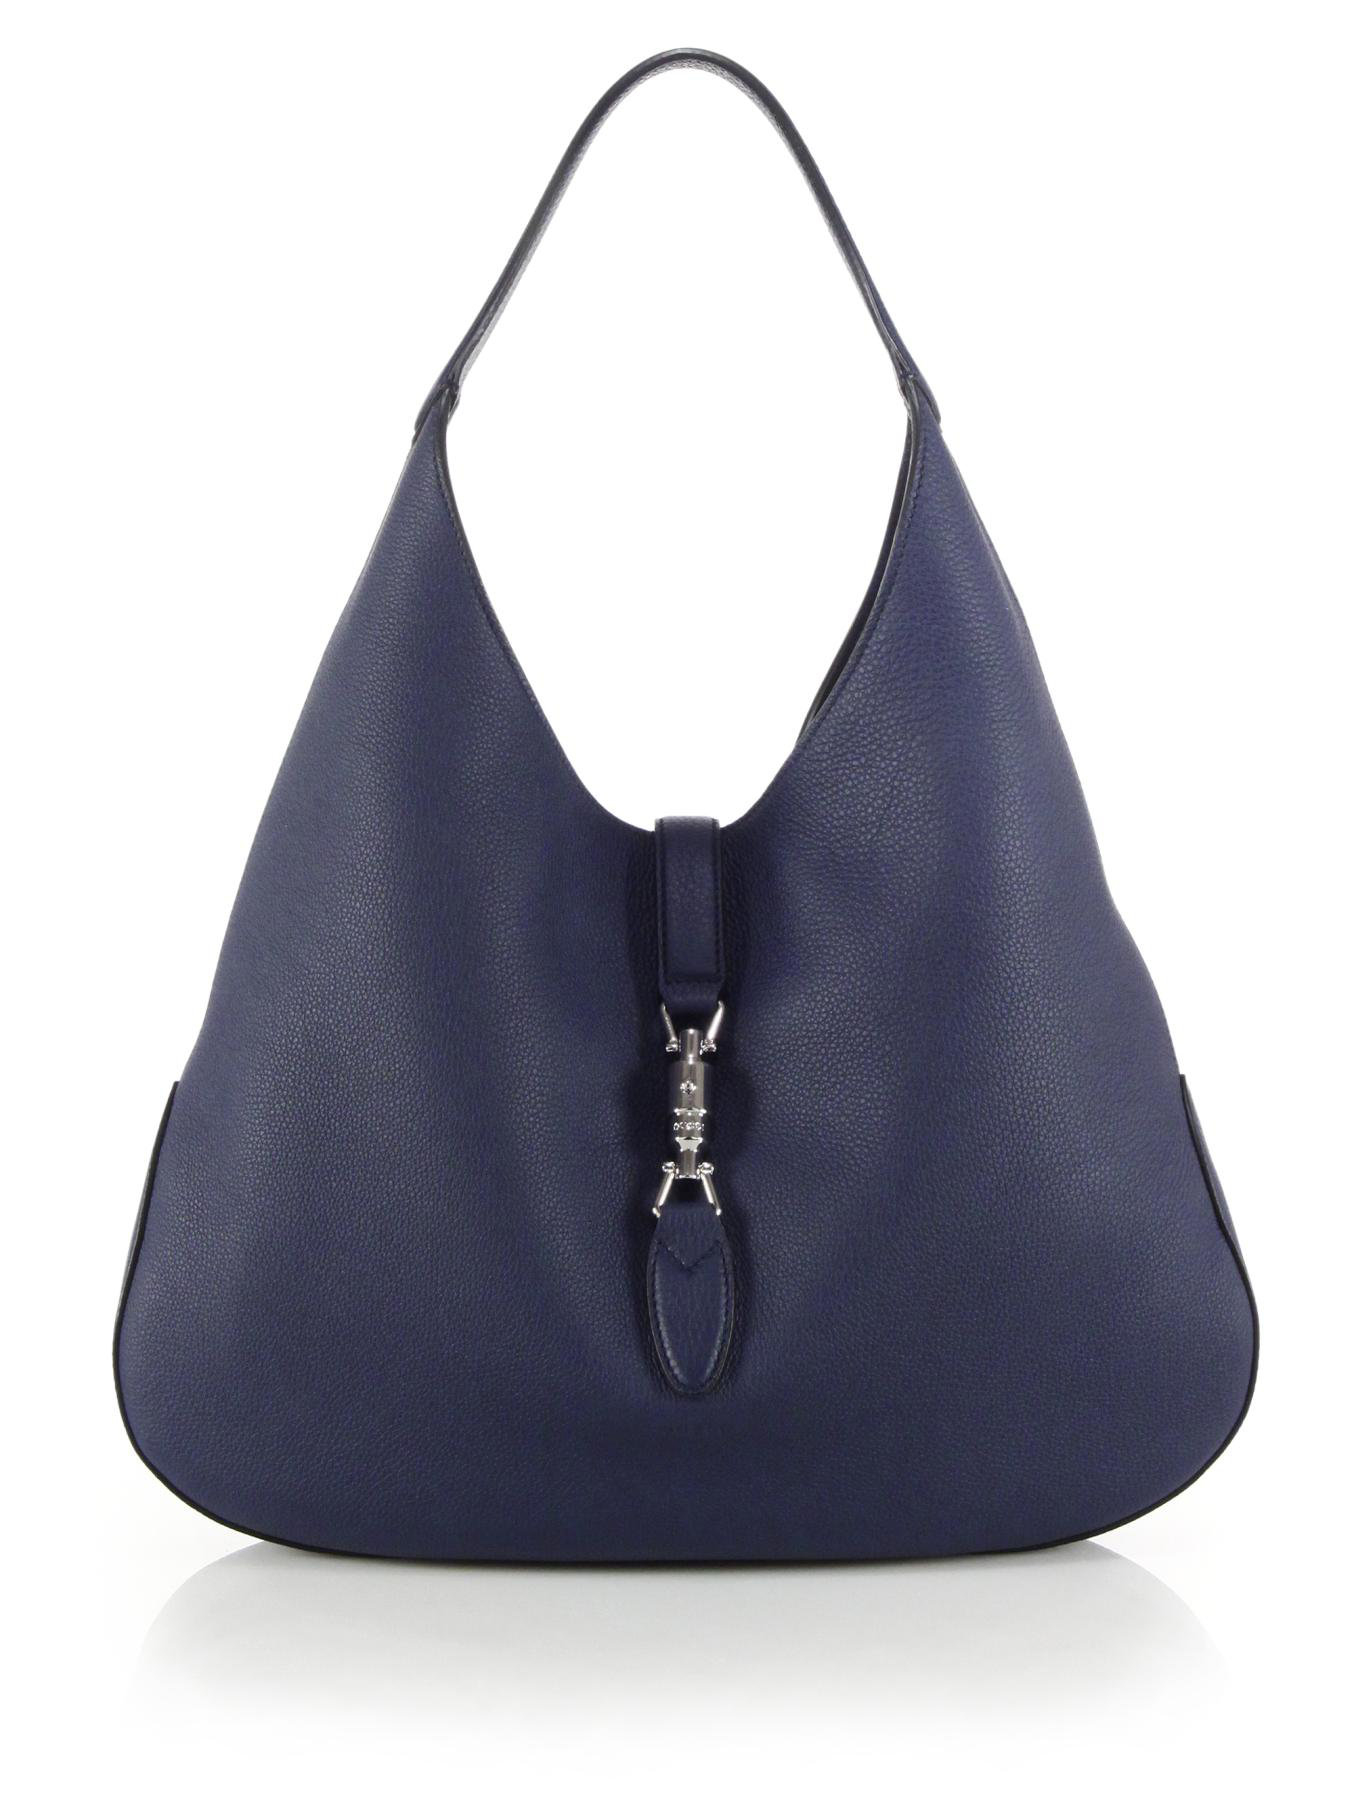 Gucci Jackie Soft Leather Hobo Bag in Blue | Lyst